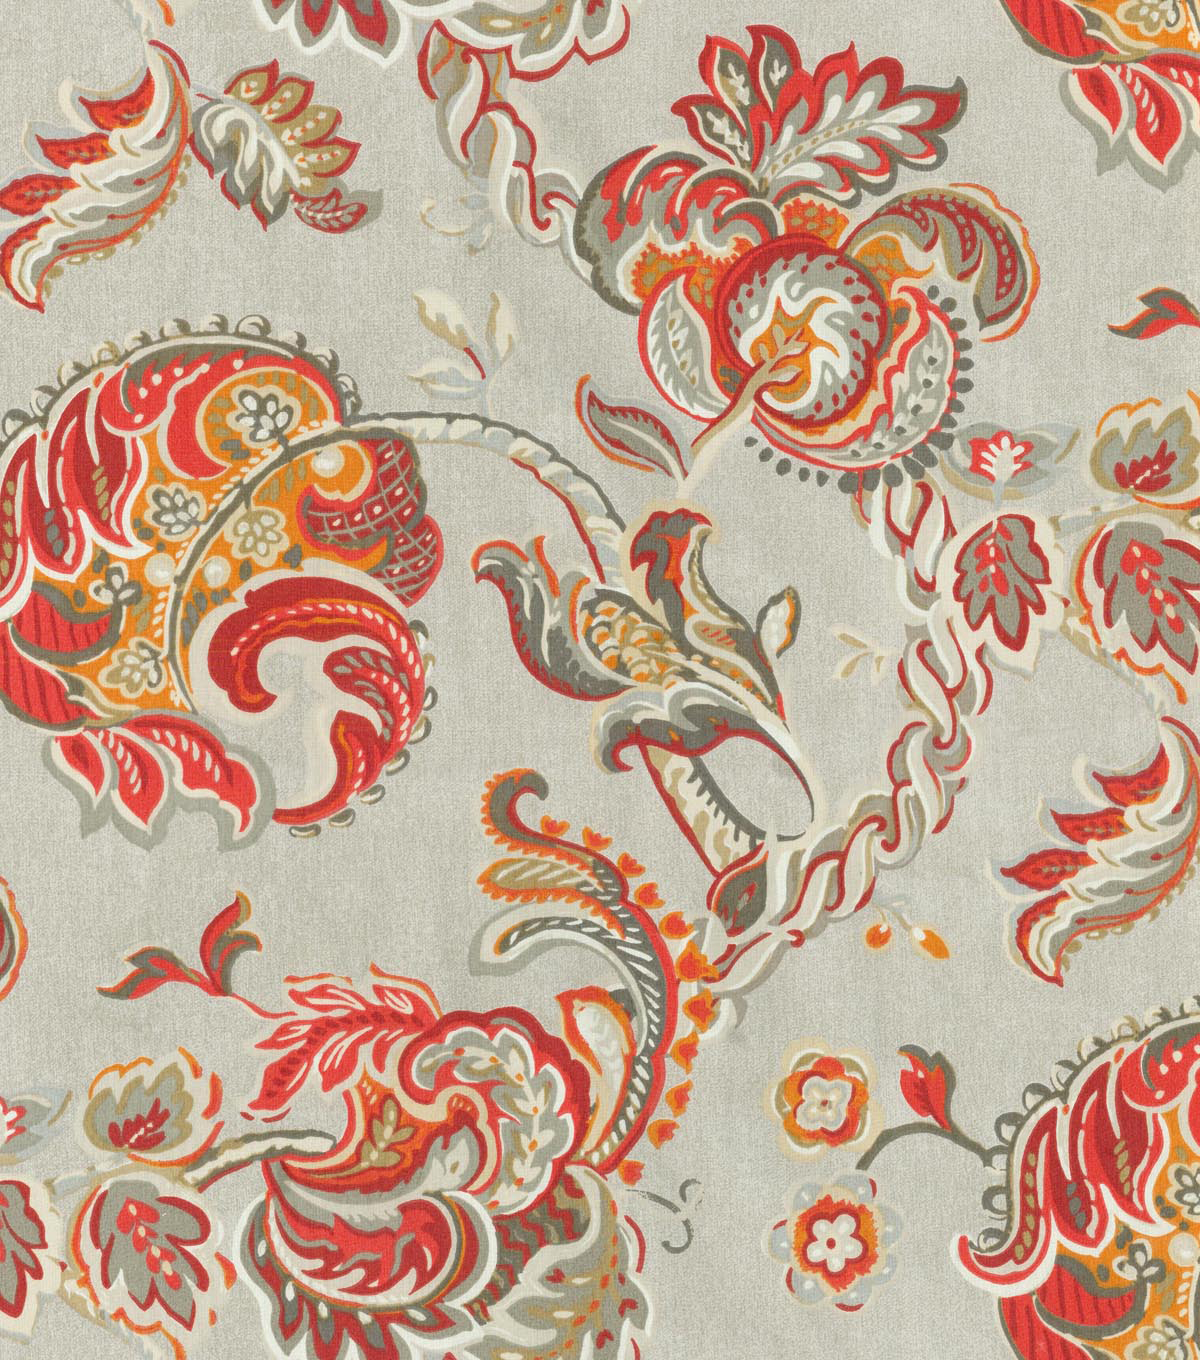 Home Decor 8\u0022x8\u0022 Swatch Fabric-Waverly Summer Canvas Lantern Red